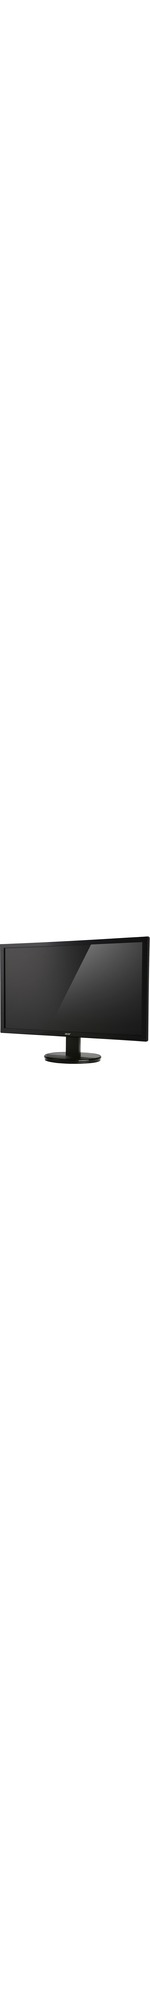 Acer K222HQL 54.6 cm 21.5And#34; LED LCD Monitor - 16:9 - 5 ms